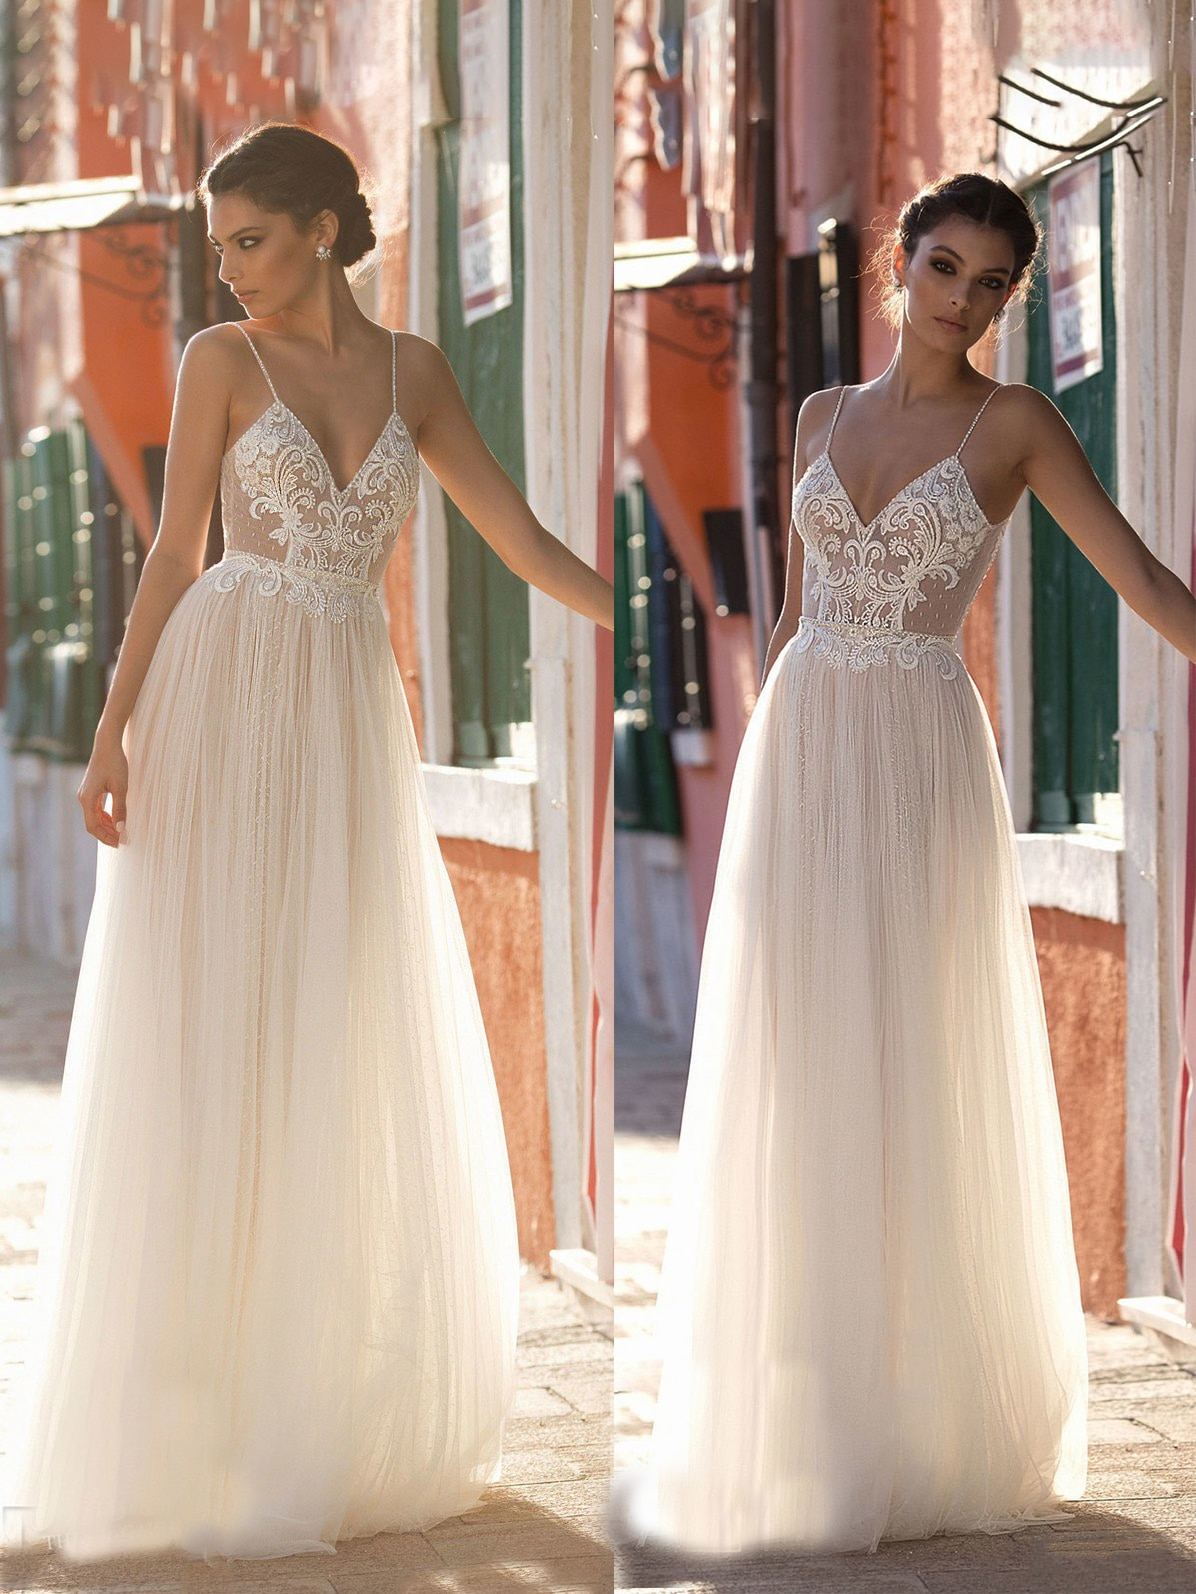 Review Beading Spaghetti Strap Wedding Dress Chic Modern A Line Polka Dots Tulle Backless Boho Beach Appliqued Bridal Gown Custom Made